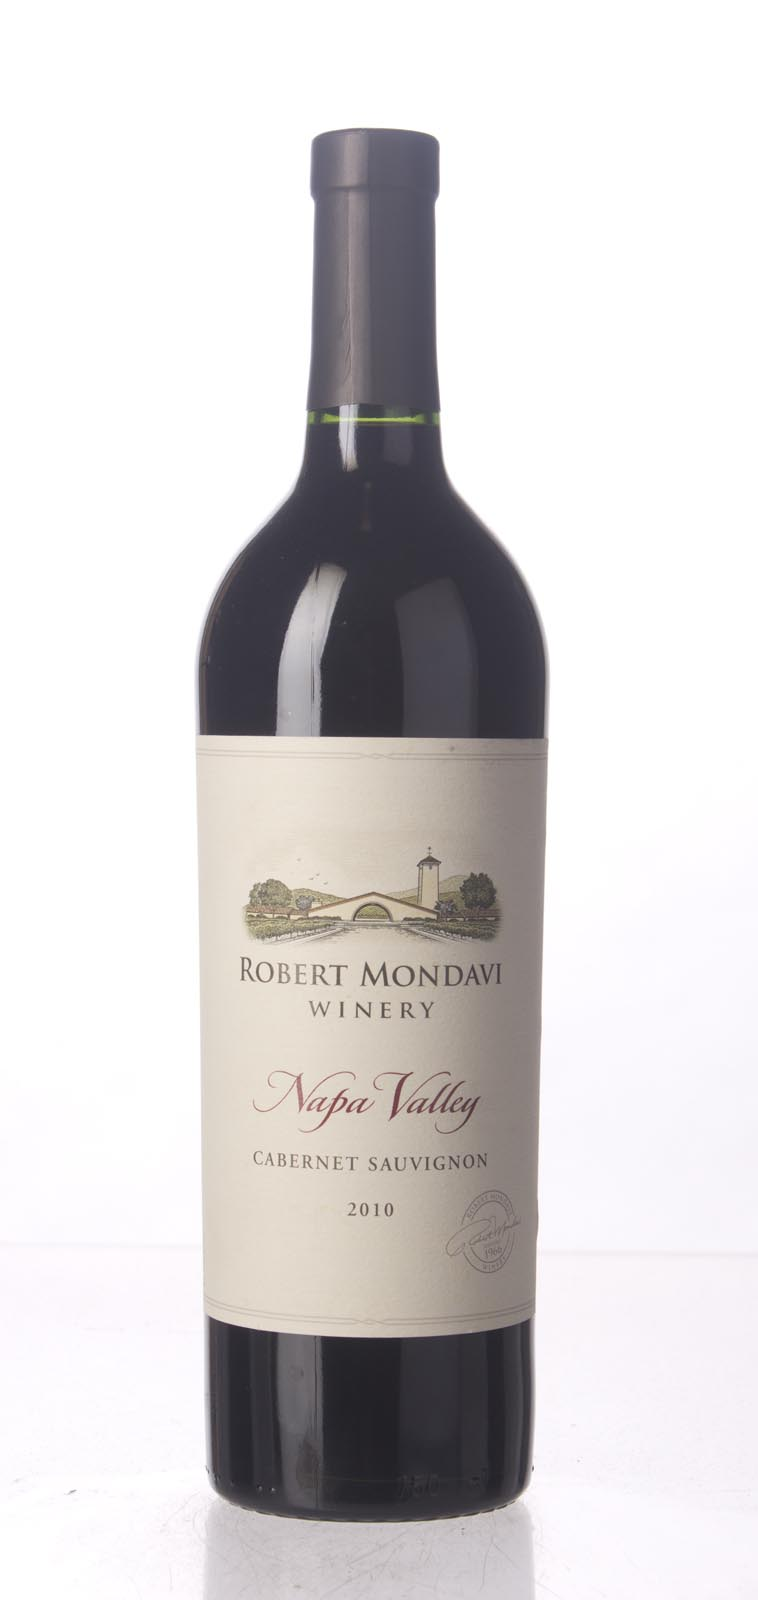 Robert Mondavi Cabernet Sauvignon Napa Valley 2010, 750mL (AG90) from The BPW - Merchants of rare and fine wines.